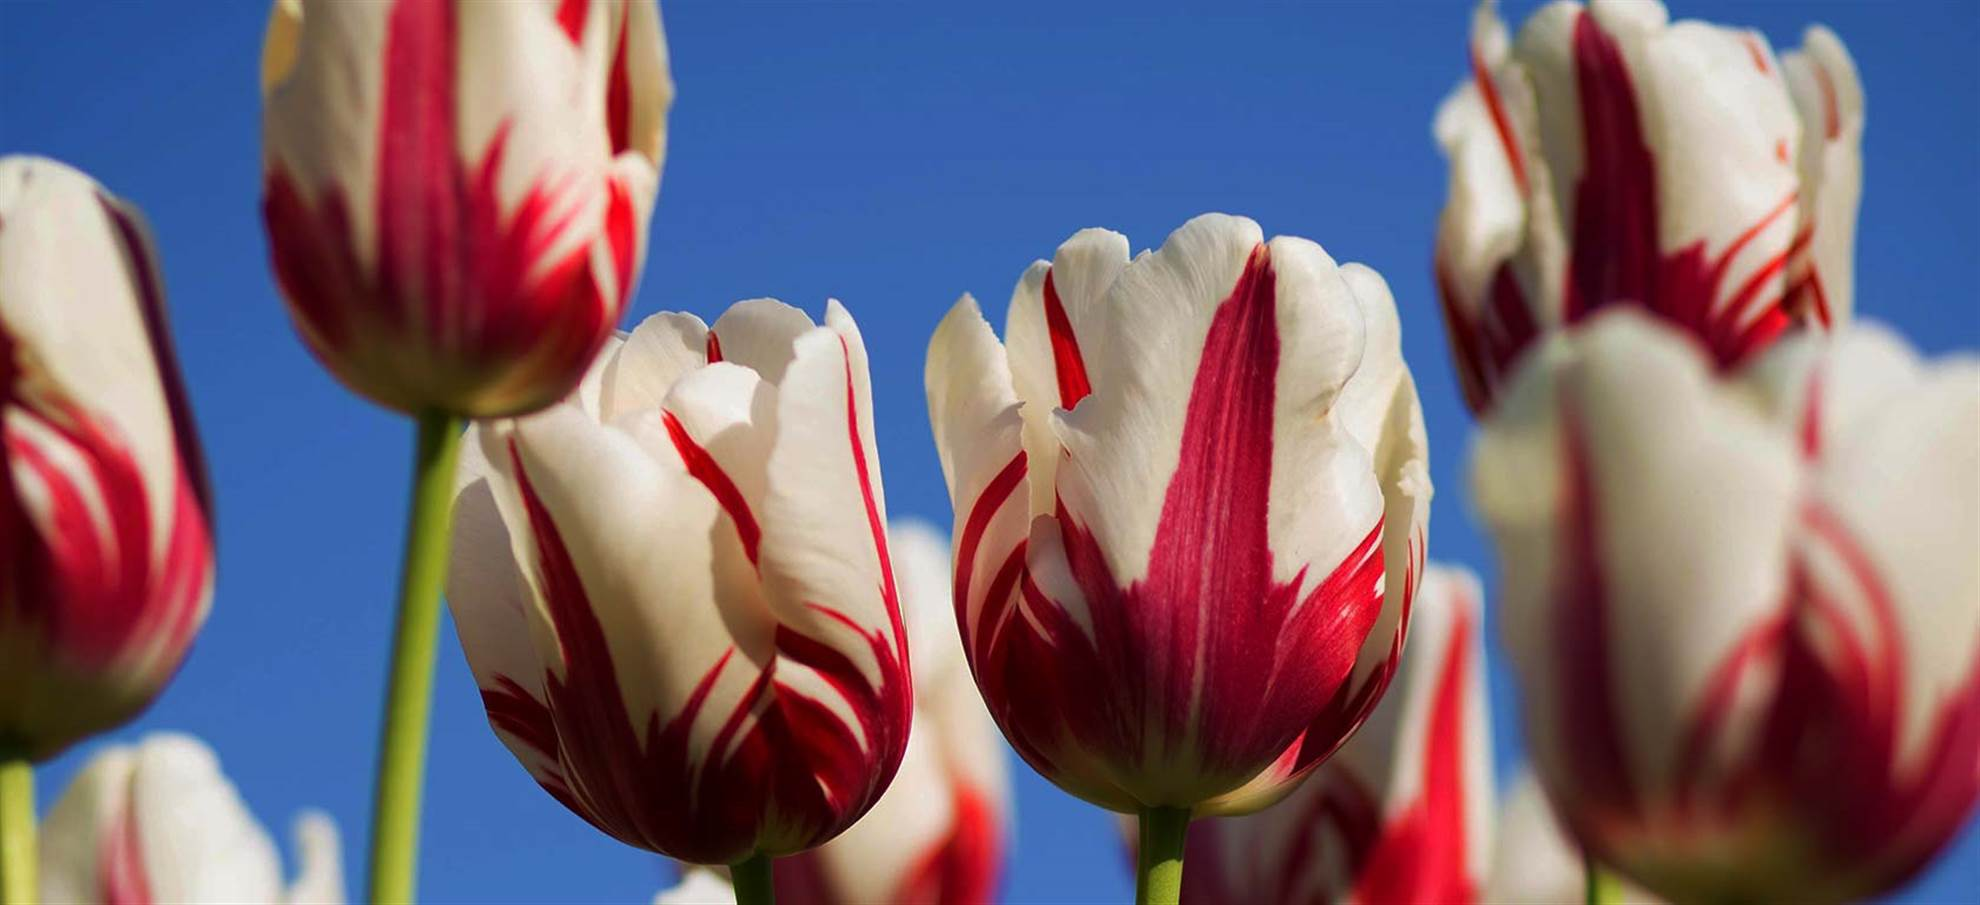 Keukenhof billet coupe-file 2019